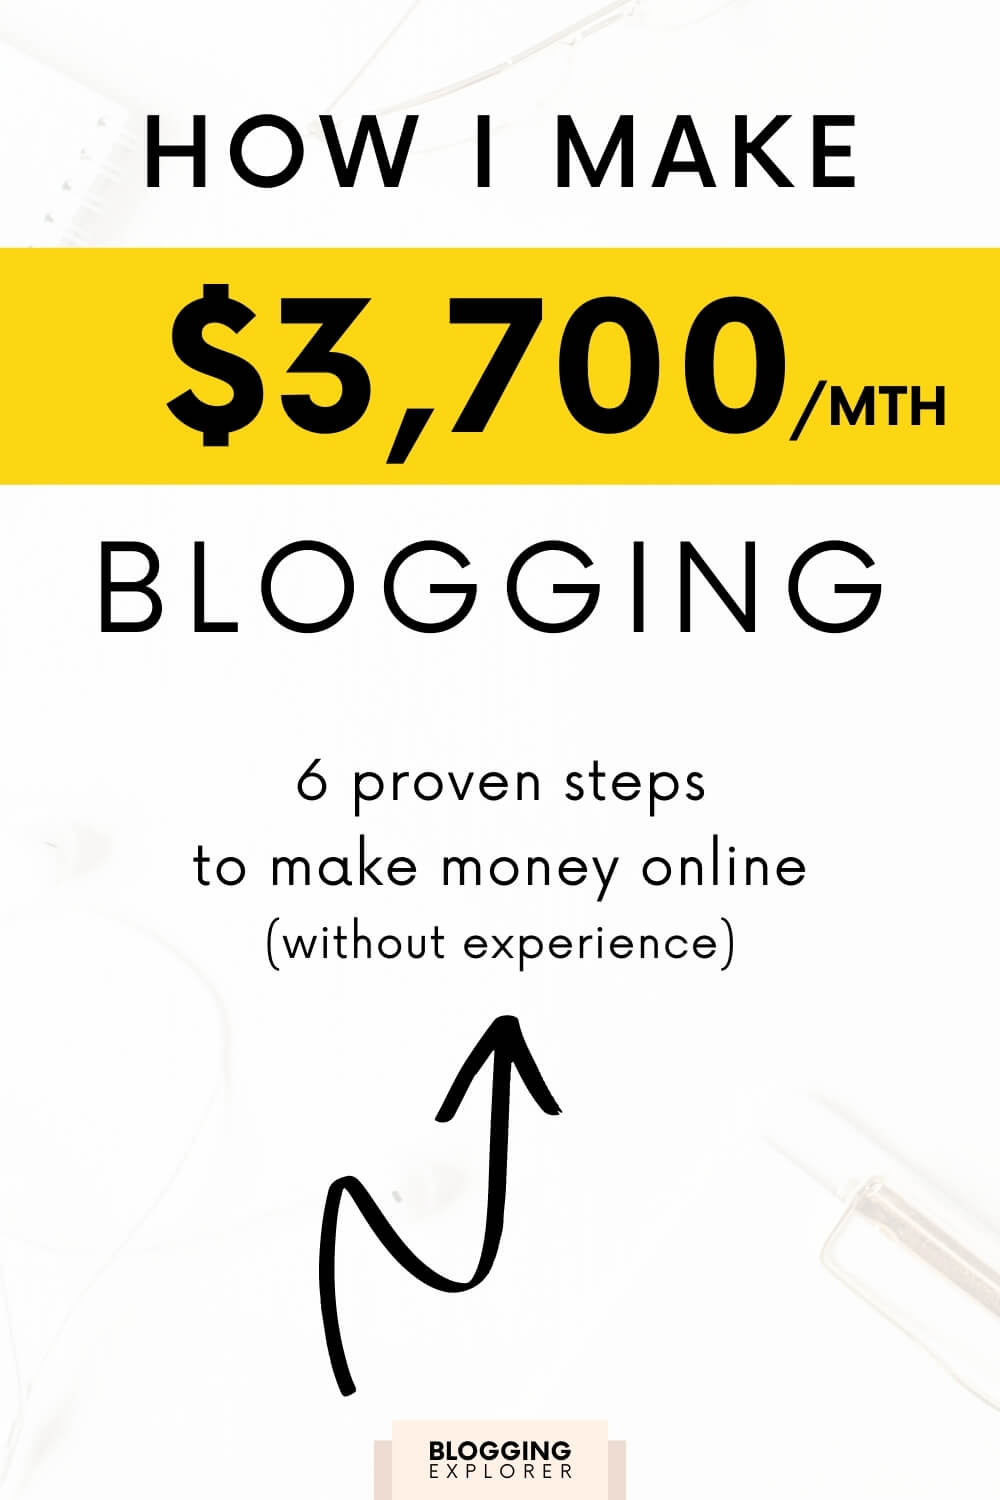 How to Make Money Blogging for Beginners (2021): Step-by-Step Guide